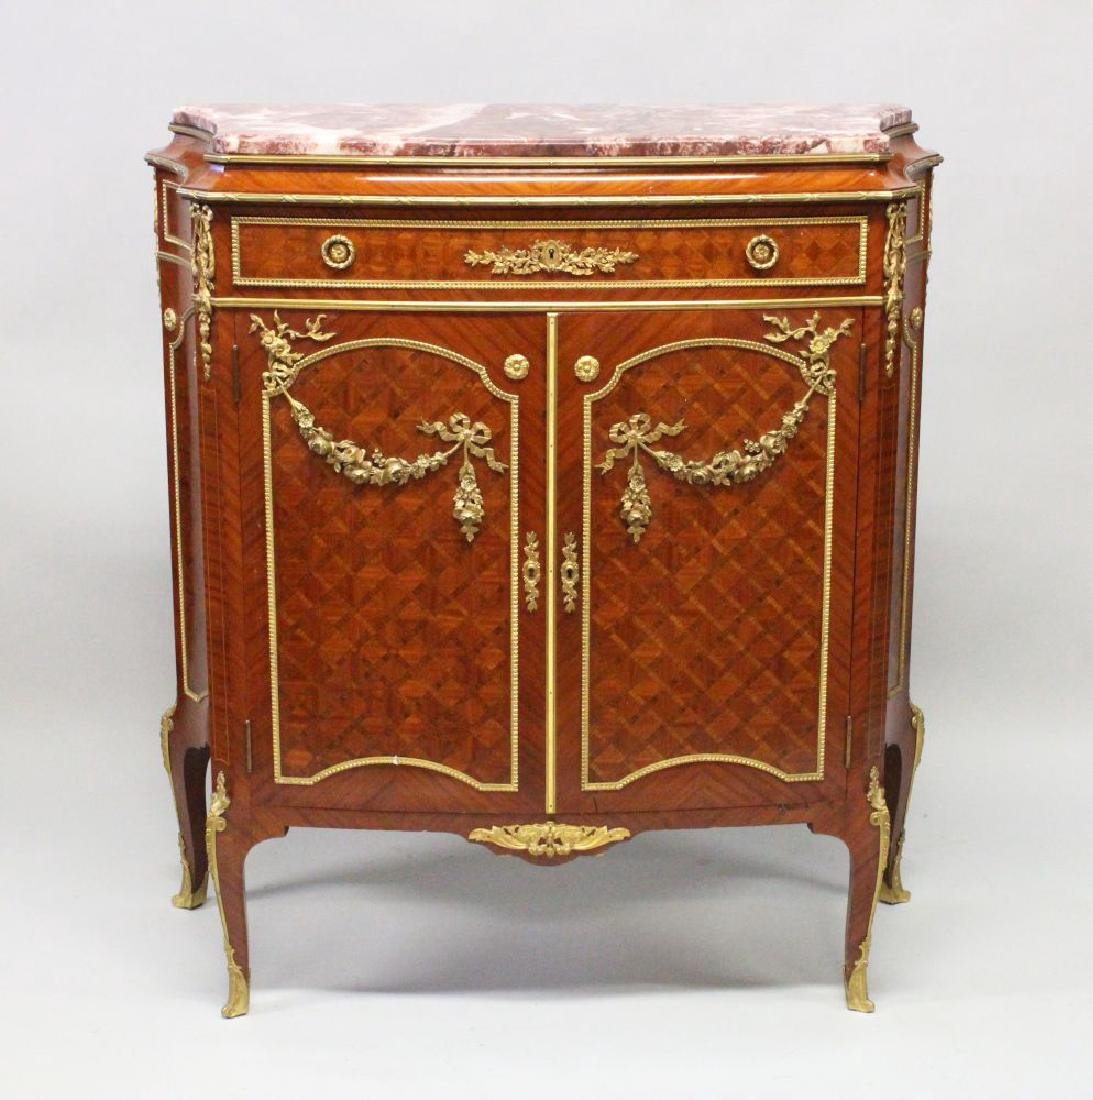 A SUPERB FRENCH LINKE MARBLE KINGWOOD CABINET, with